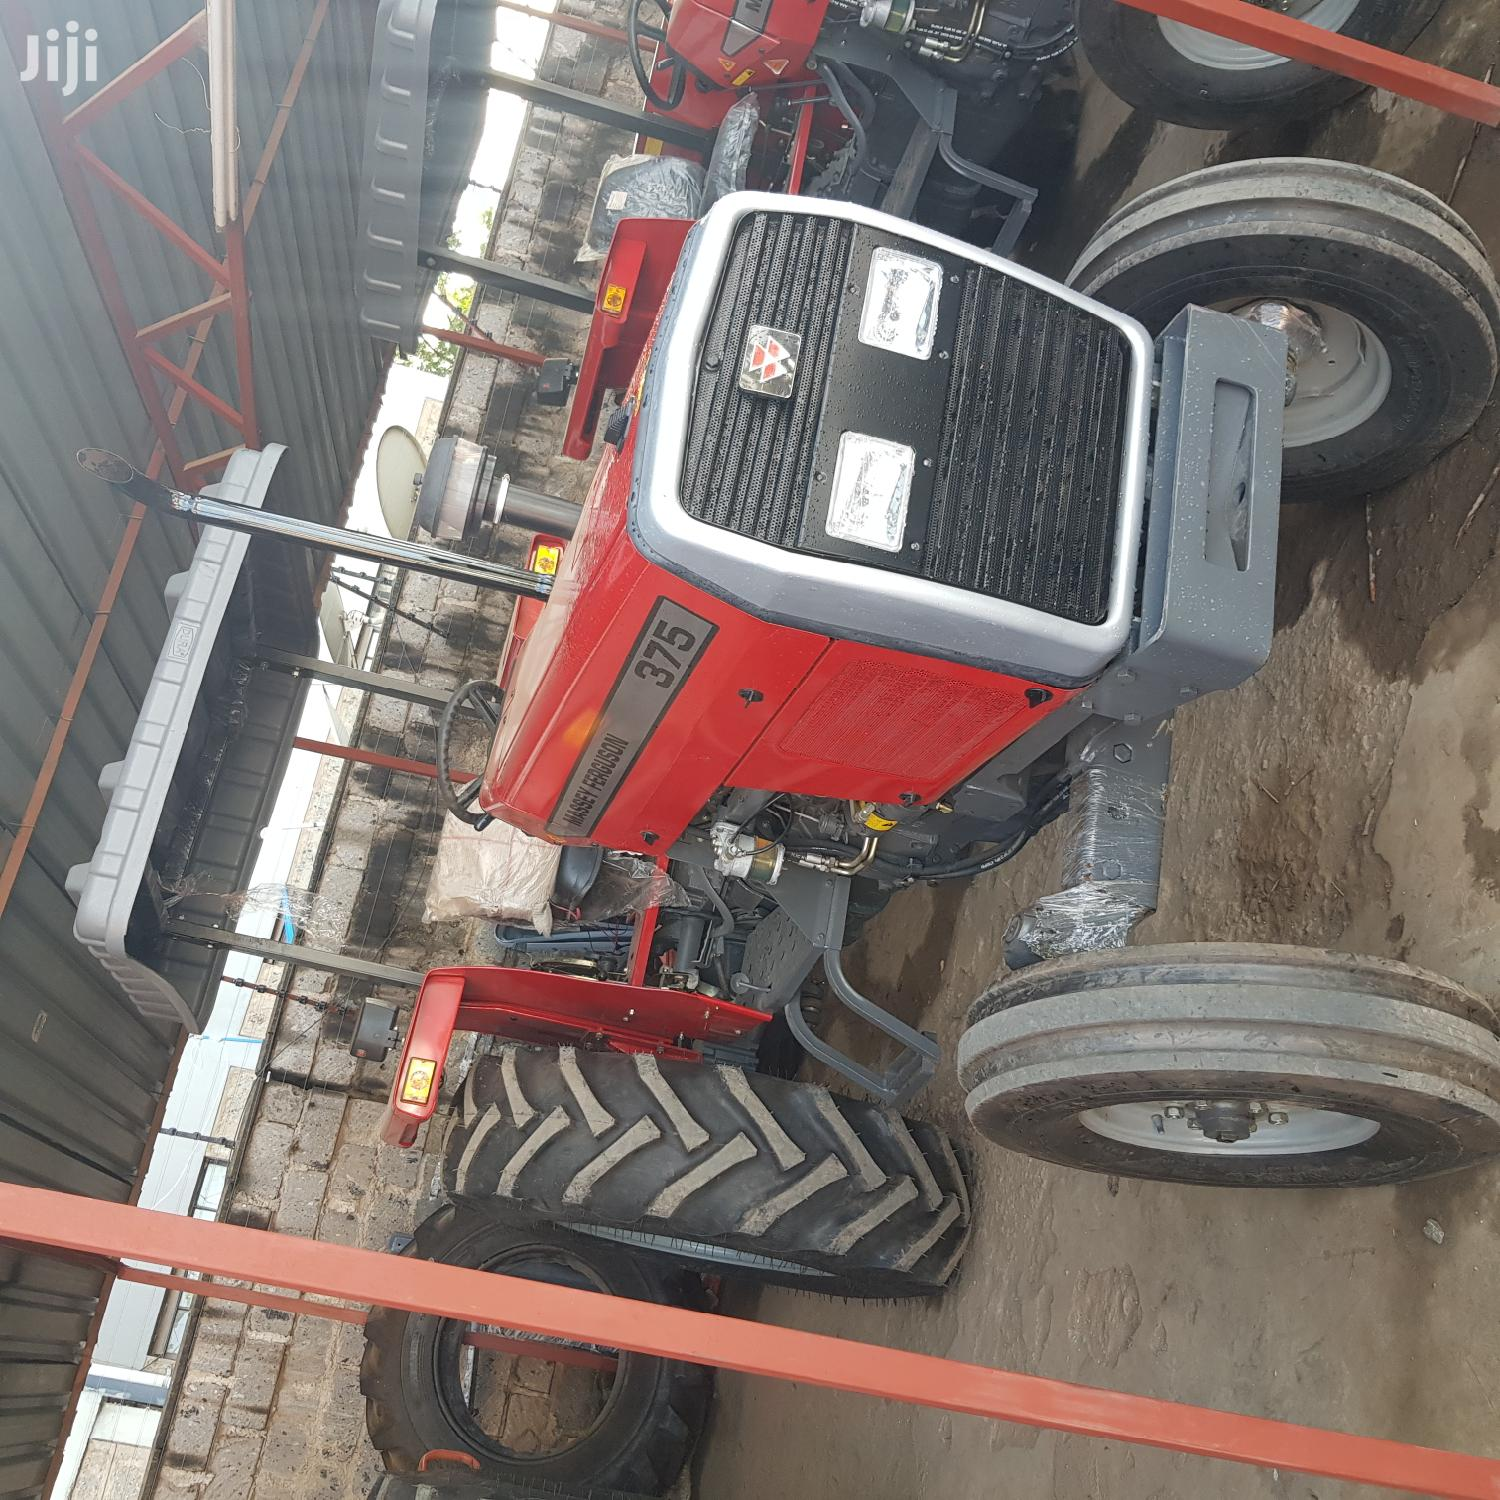 Mf 375 Tractor +All Accessories